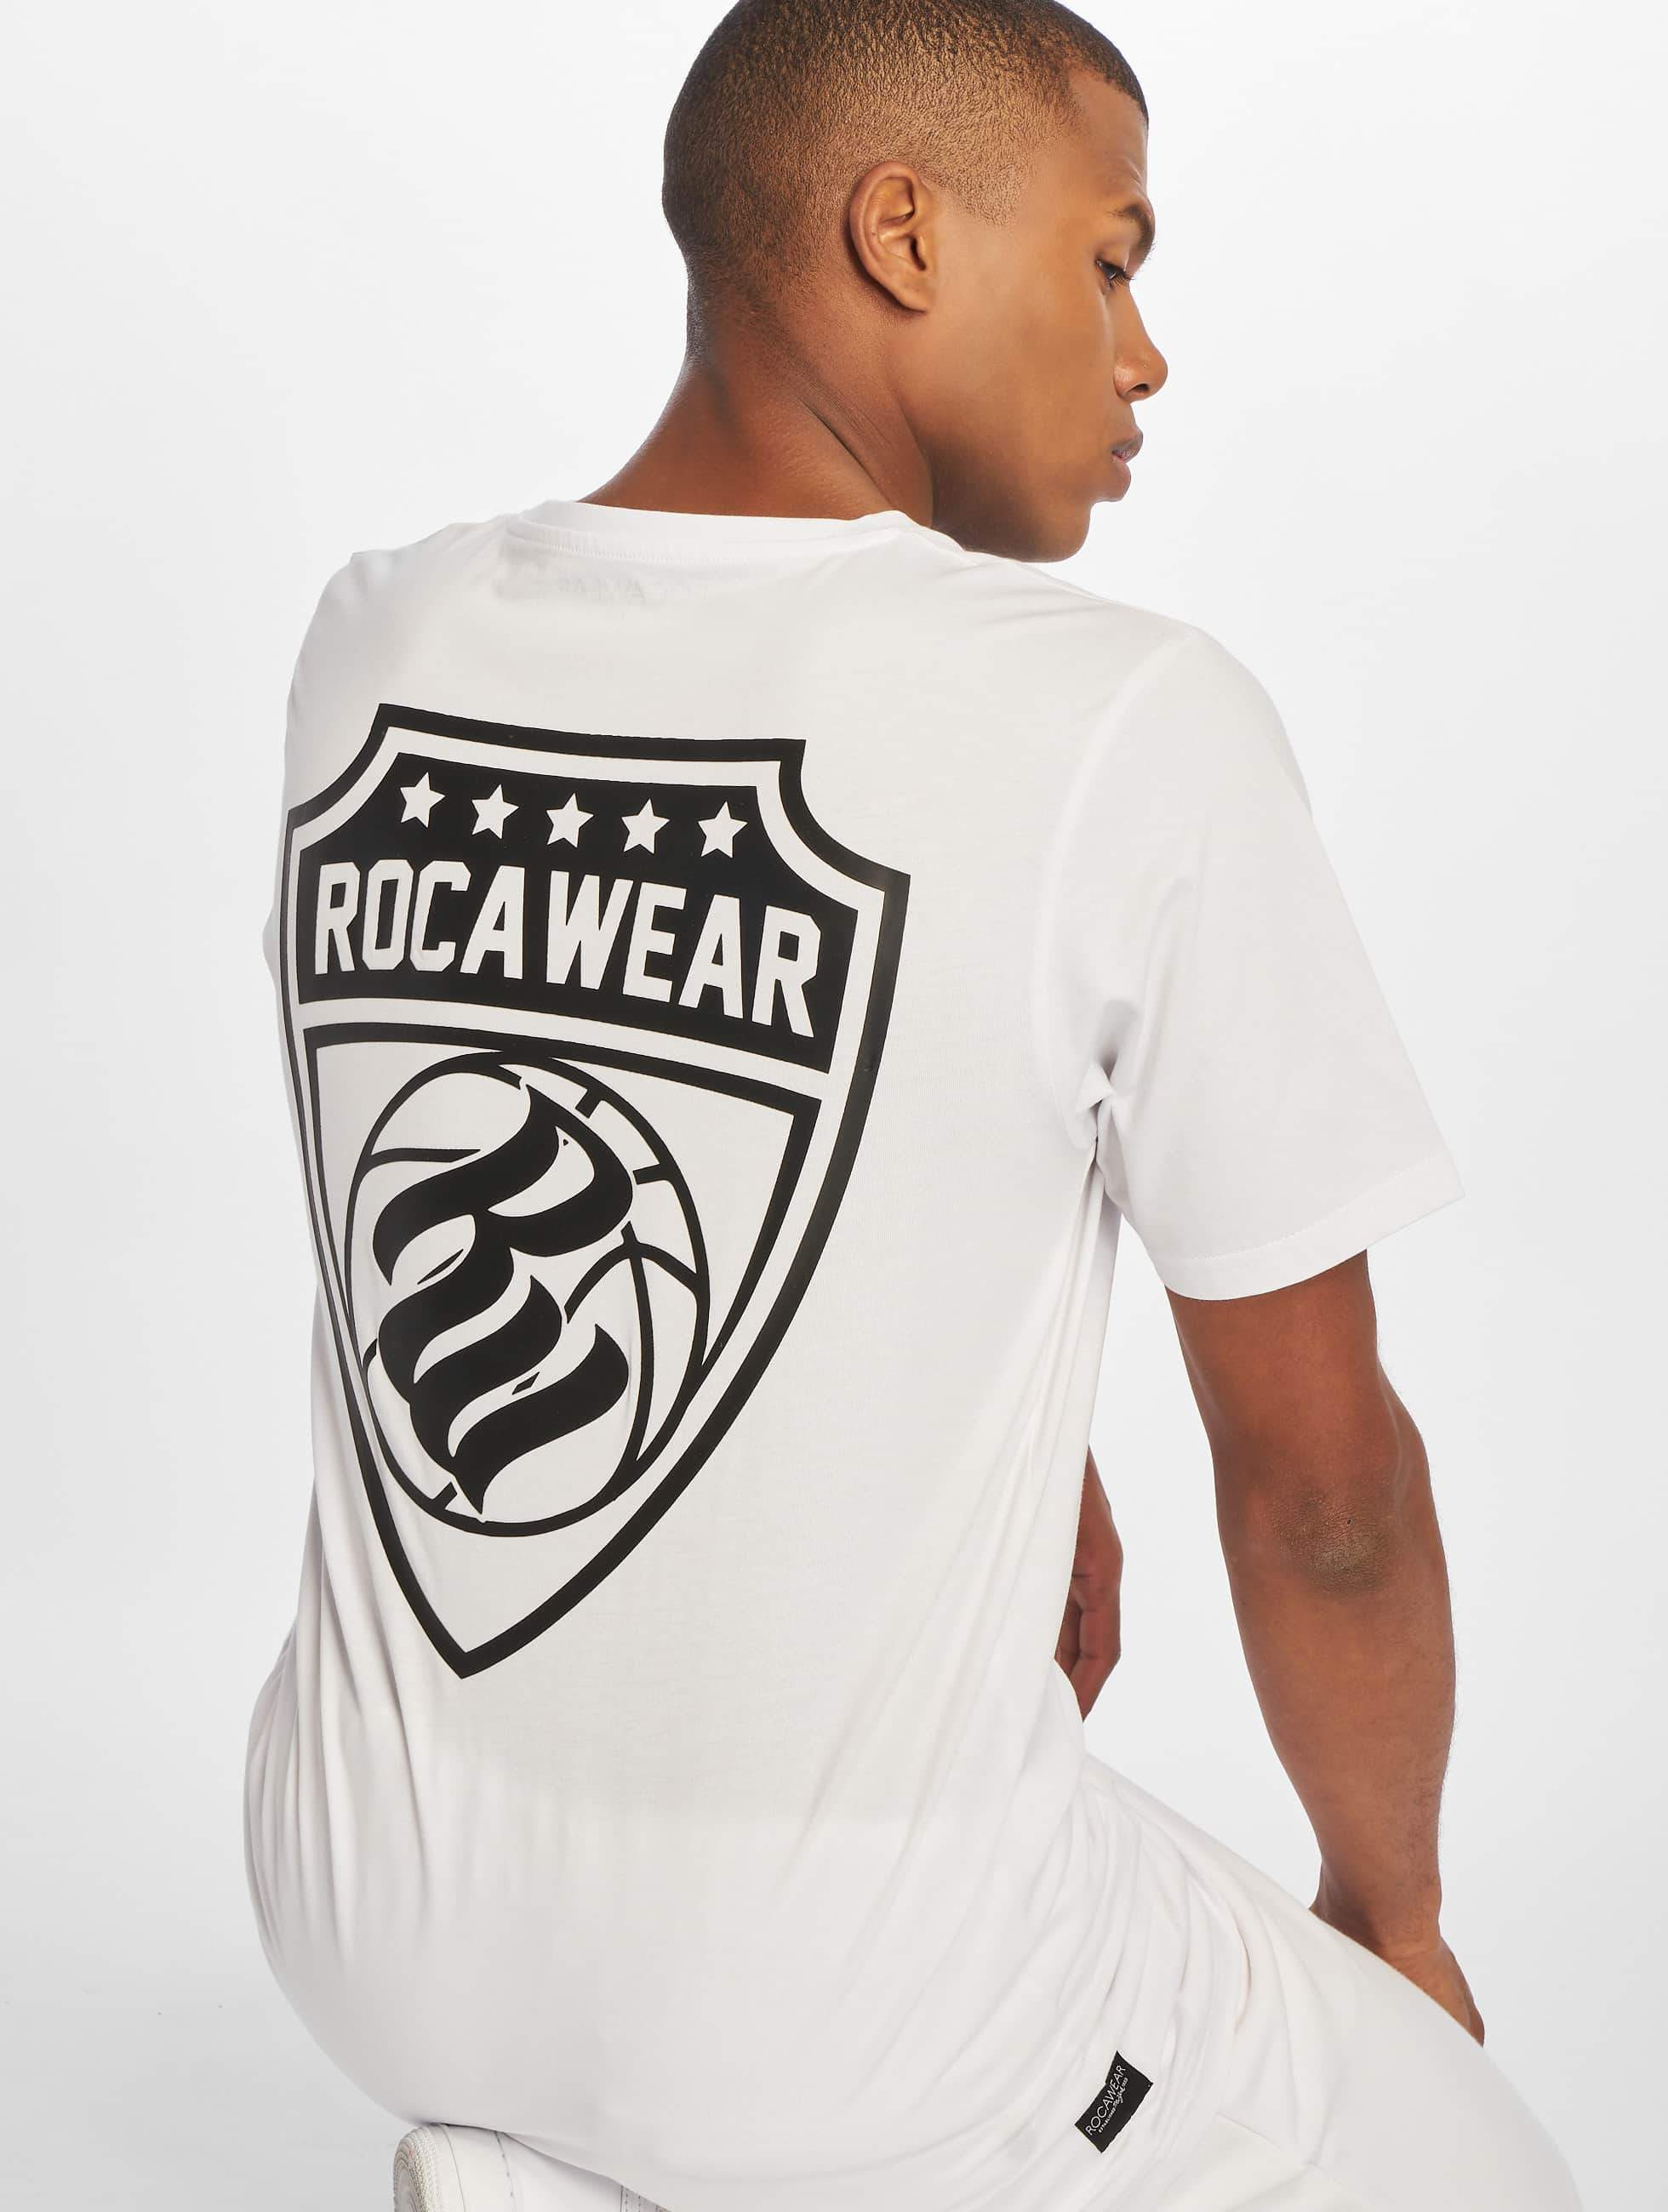 Rocawear / T-Shirt Jay in white XL